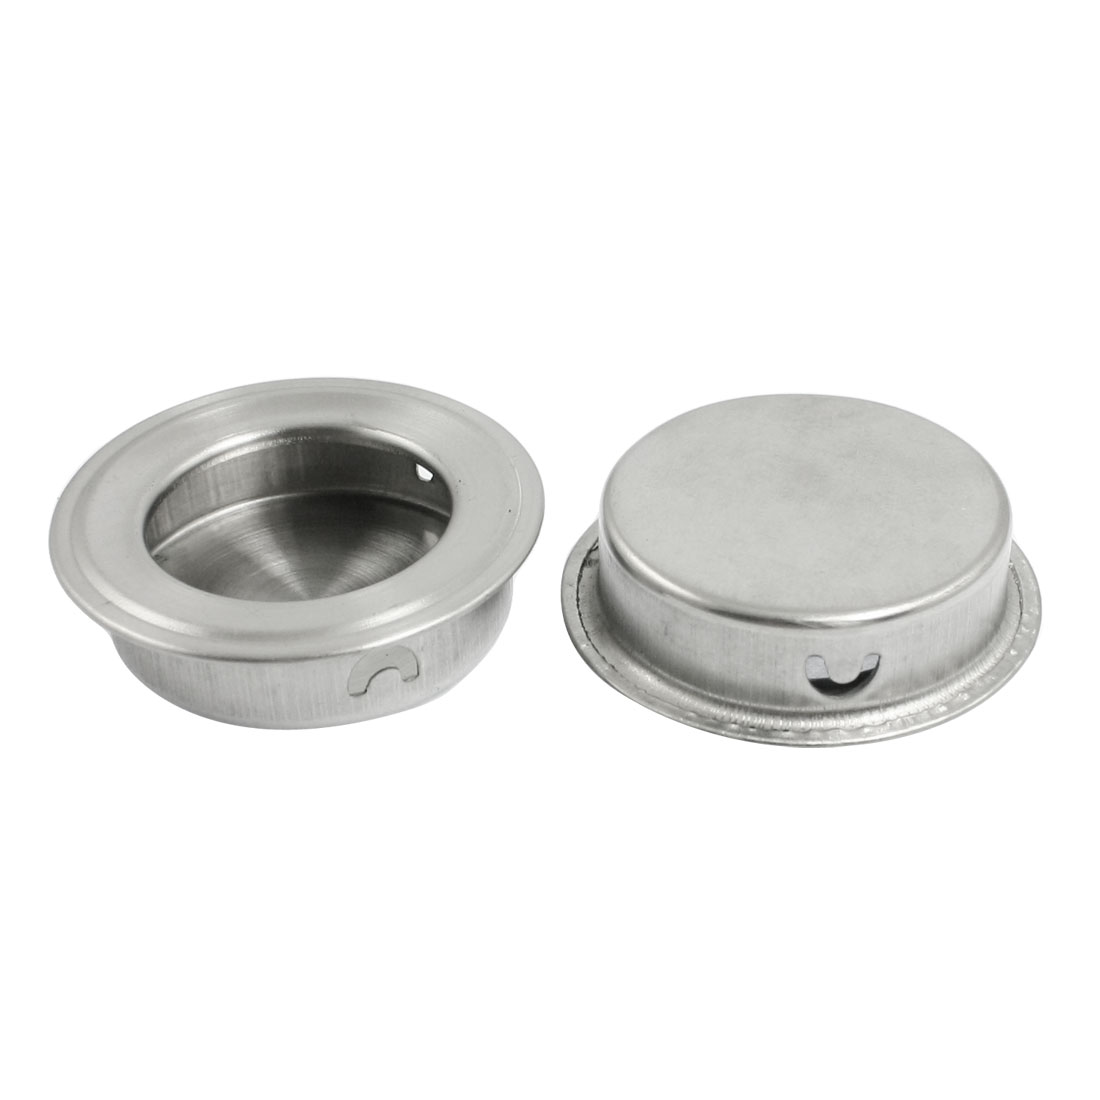 Silver Tone Round Shaped Mount Cabinet Door Pull Handle 2 Pcs